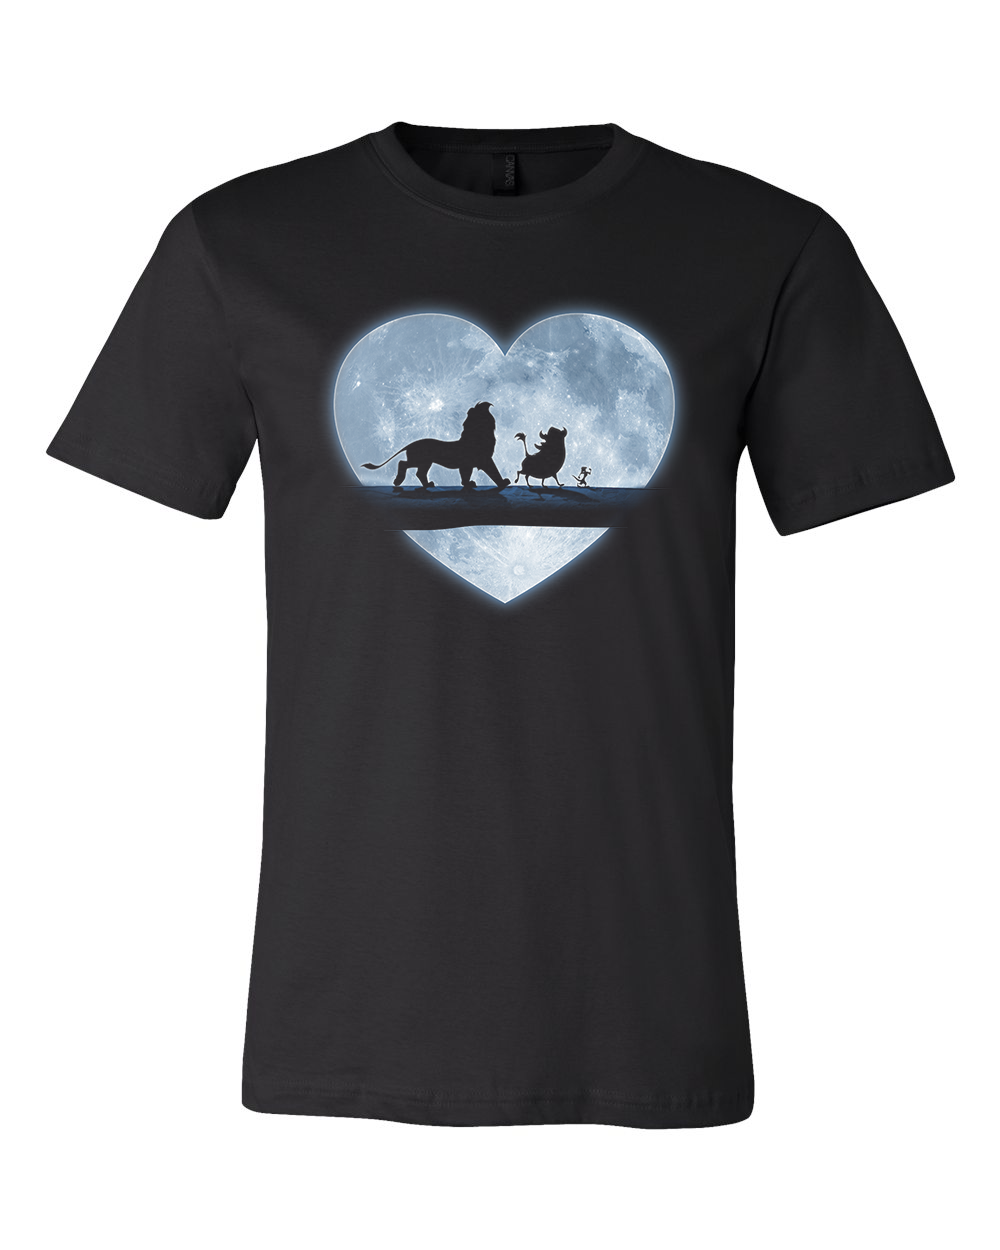 Lion King Love - Tee